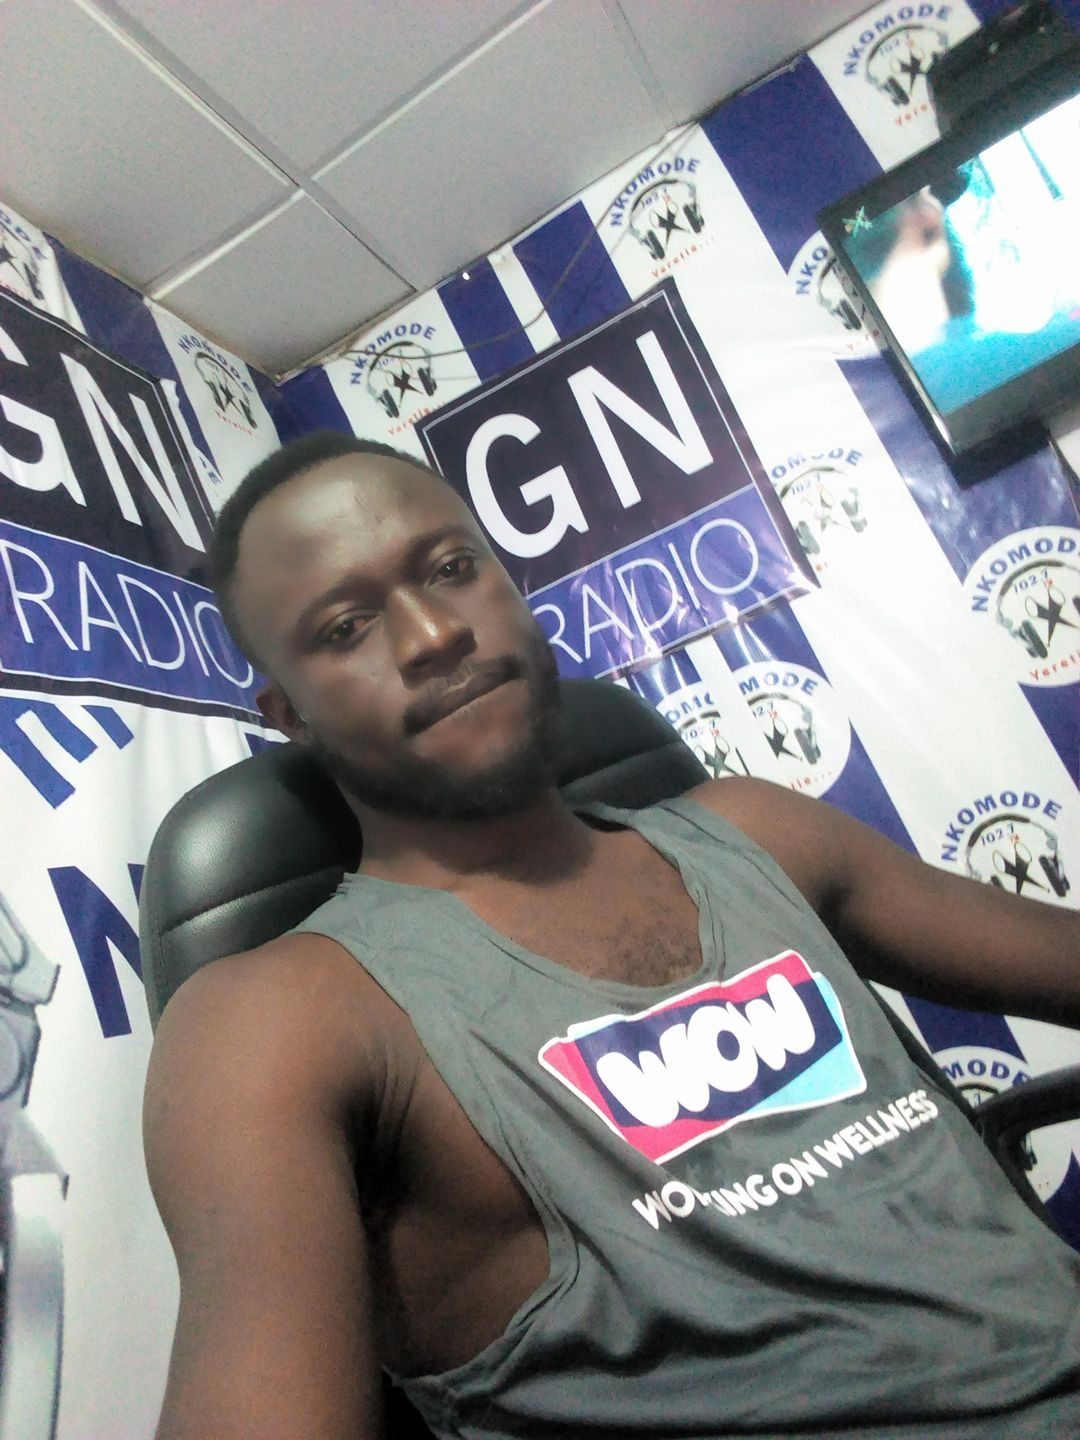 B/A Musiga Chairman Is A Fraudster. Stay Away From Him - J Black